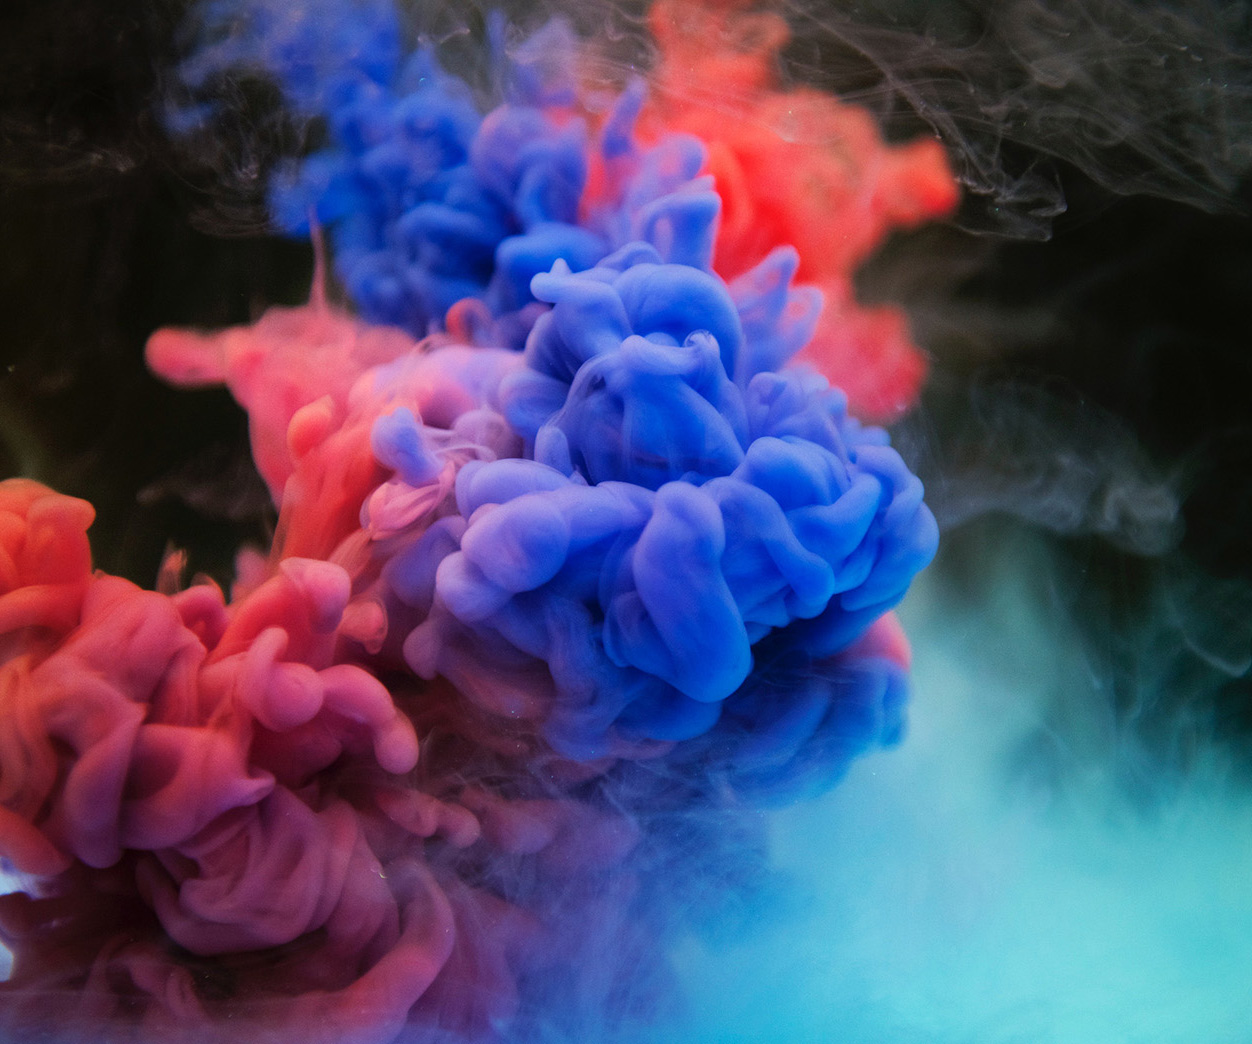 A photo of cloud of thick, colorful smoke